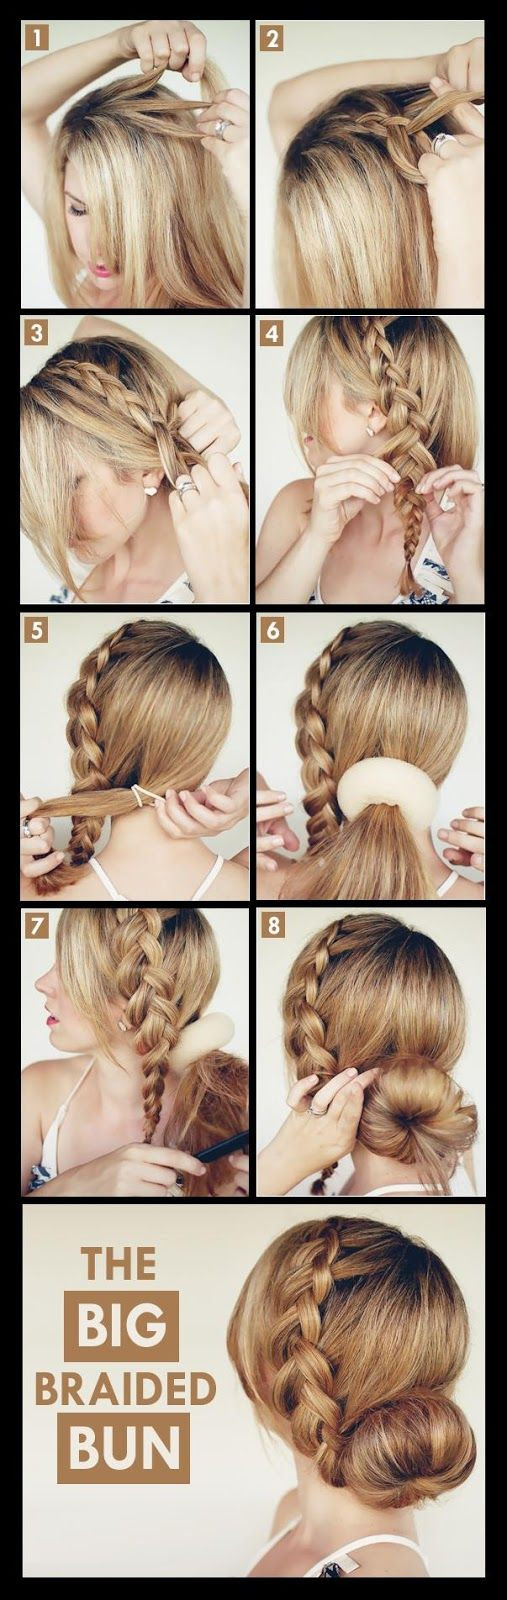 Make A Big Braided Bun For Your Self | hairstyles tutorial